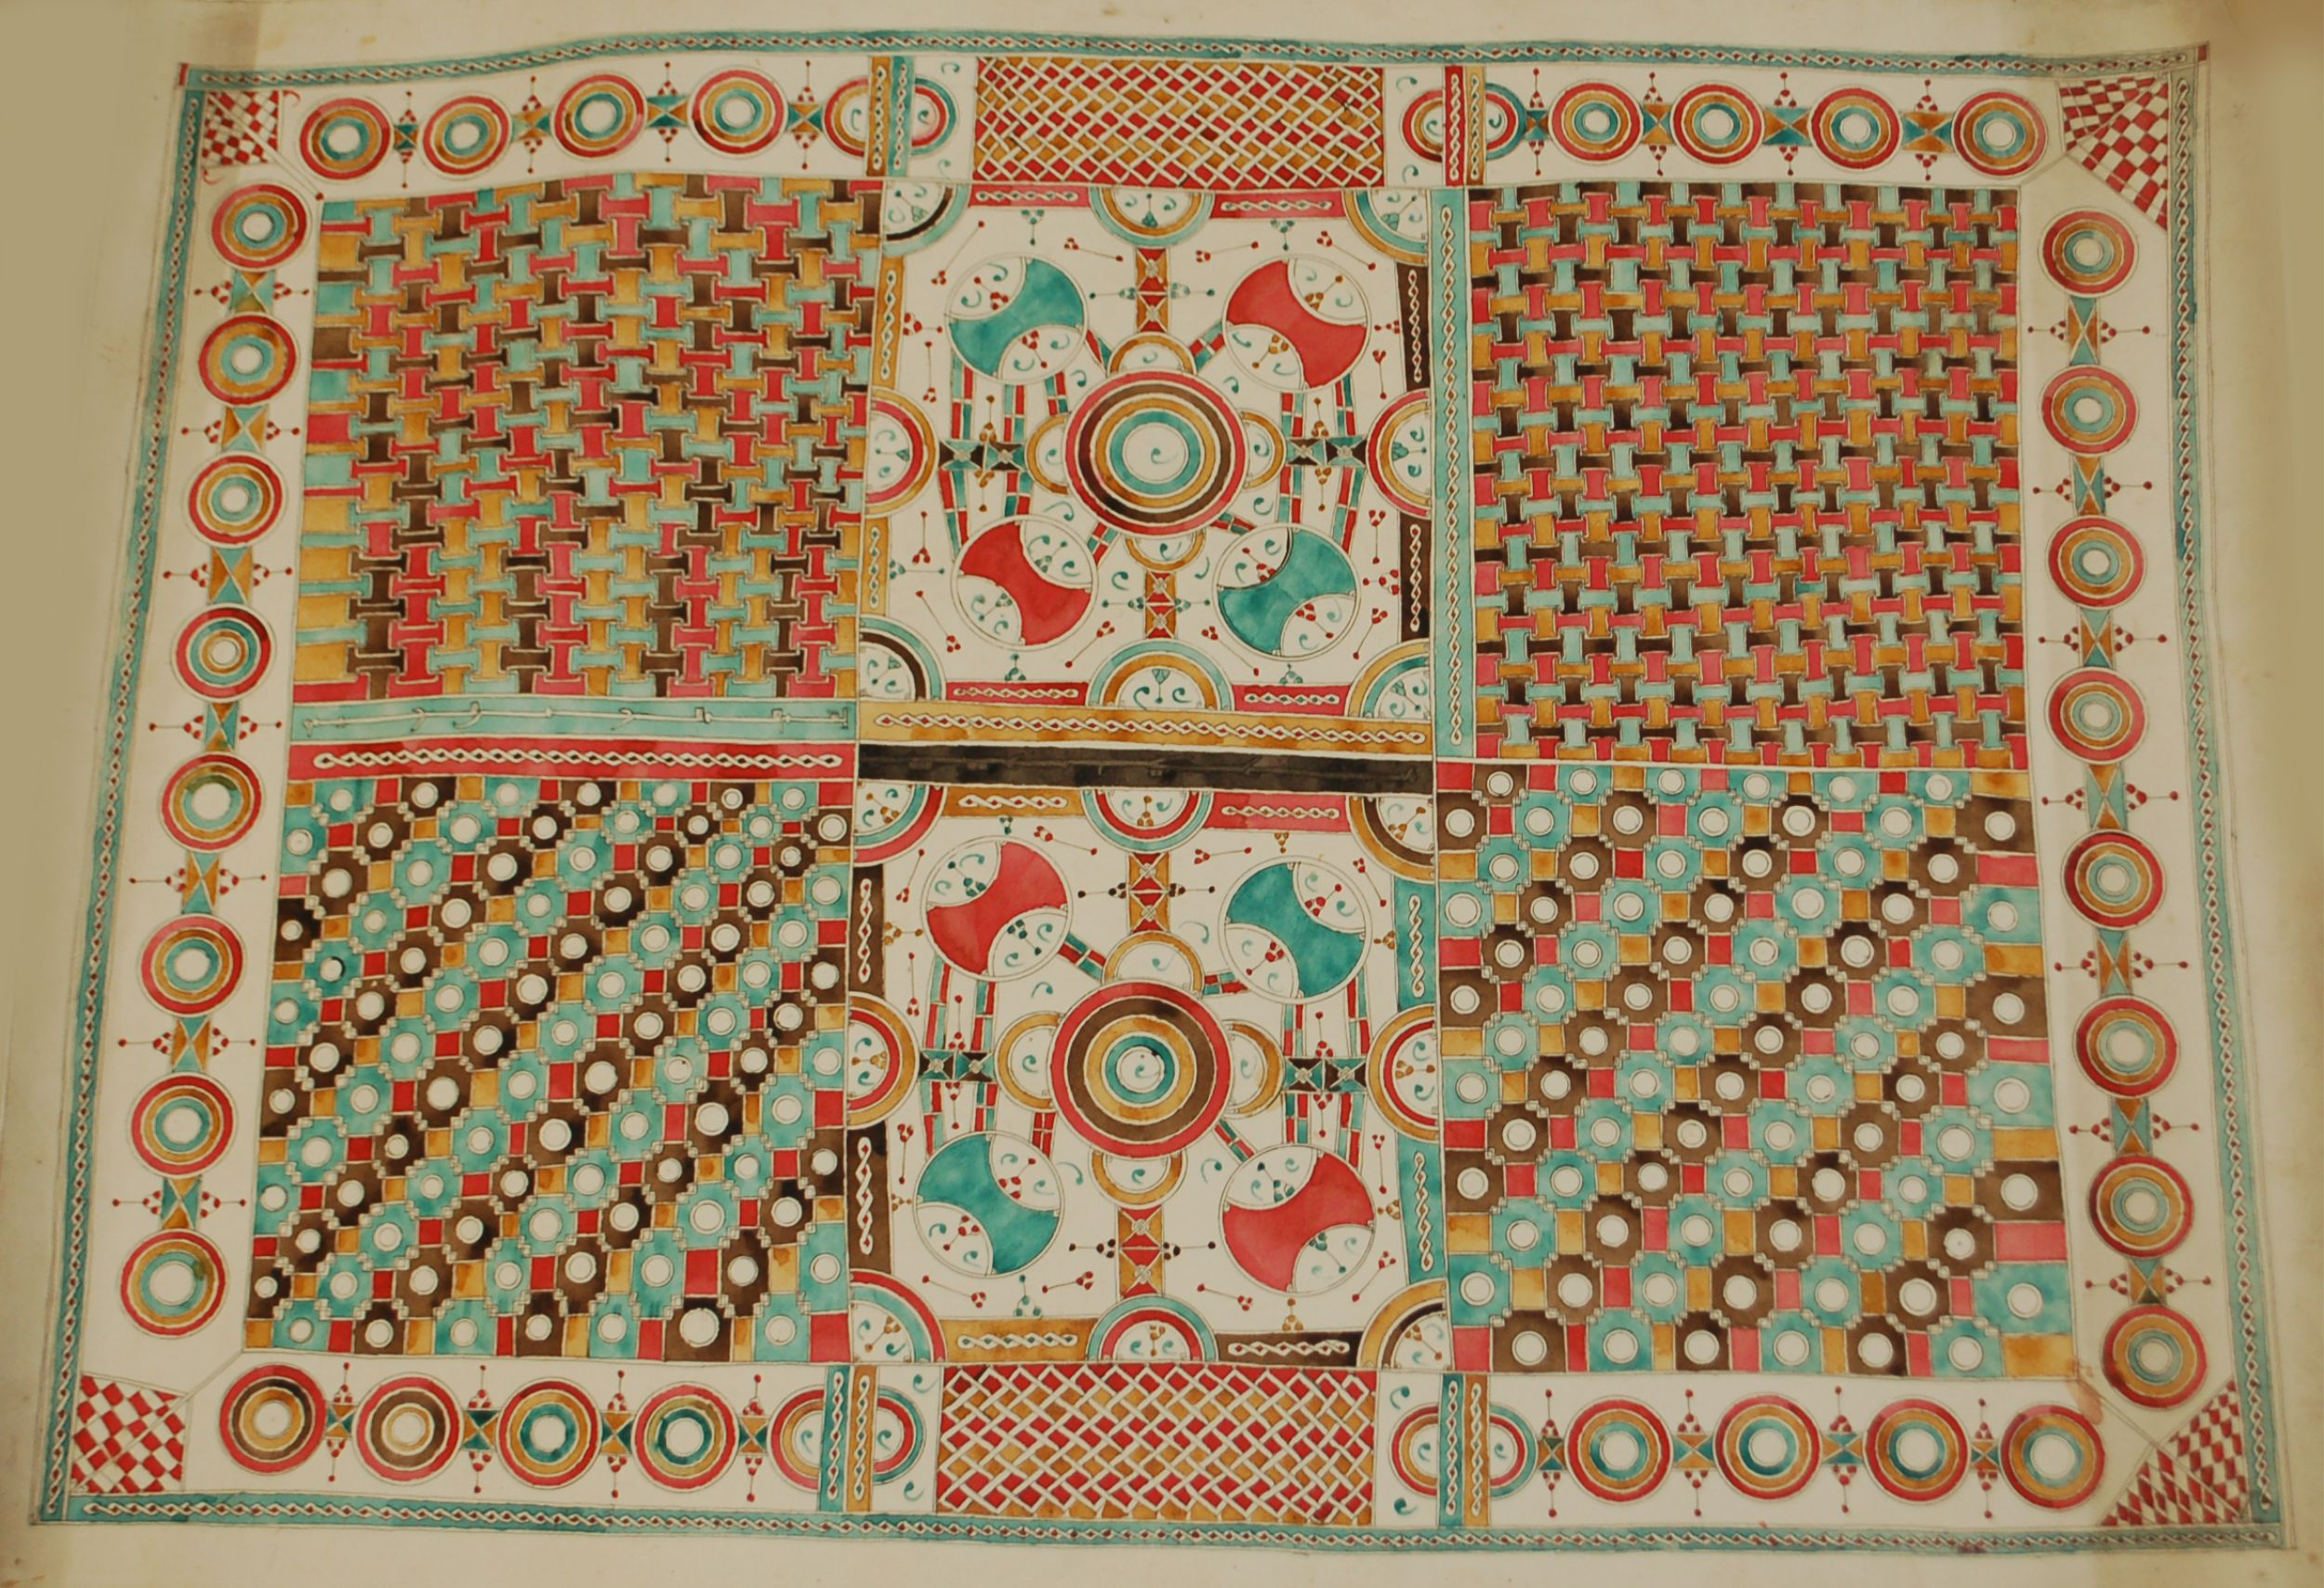 This pattern-sheet shows the rich decorative style used to illuminate Islamic religious manuscripts in northern Nigeria.